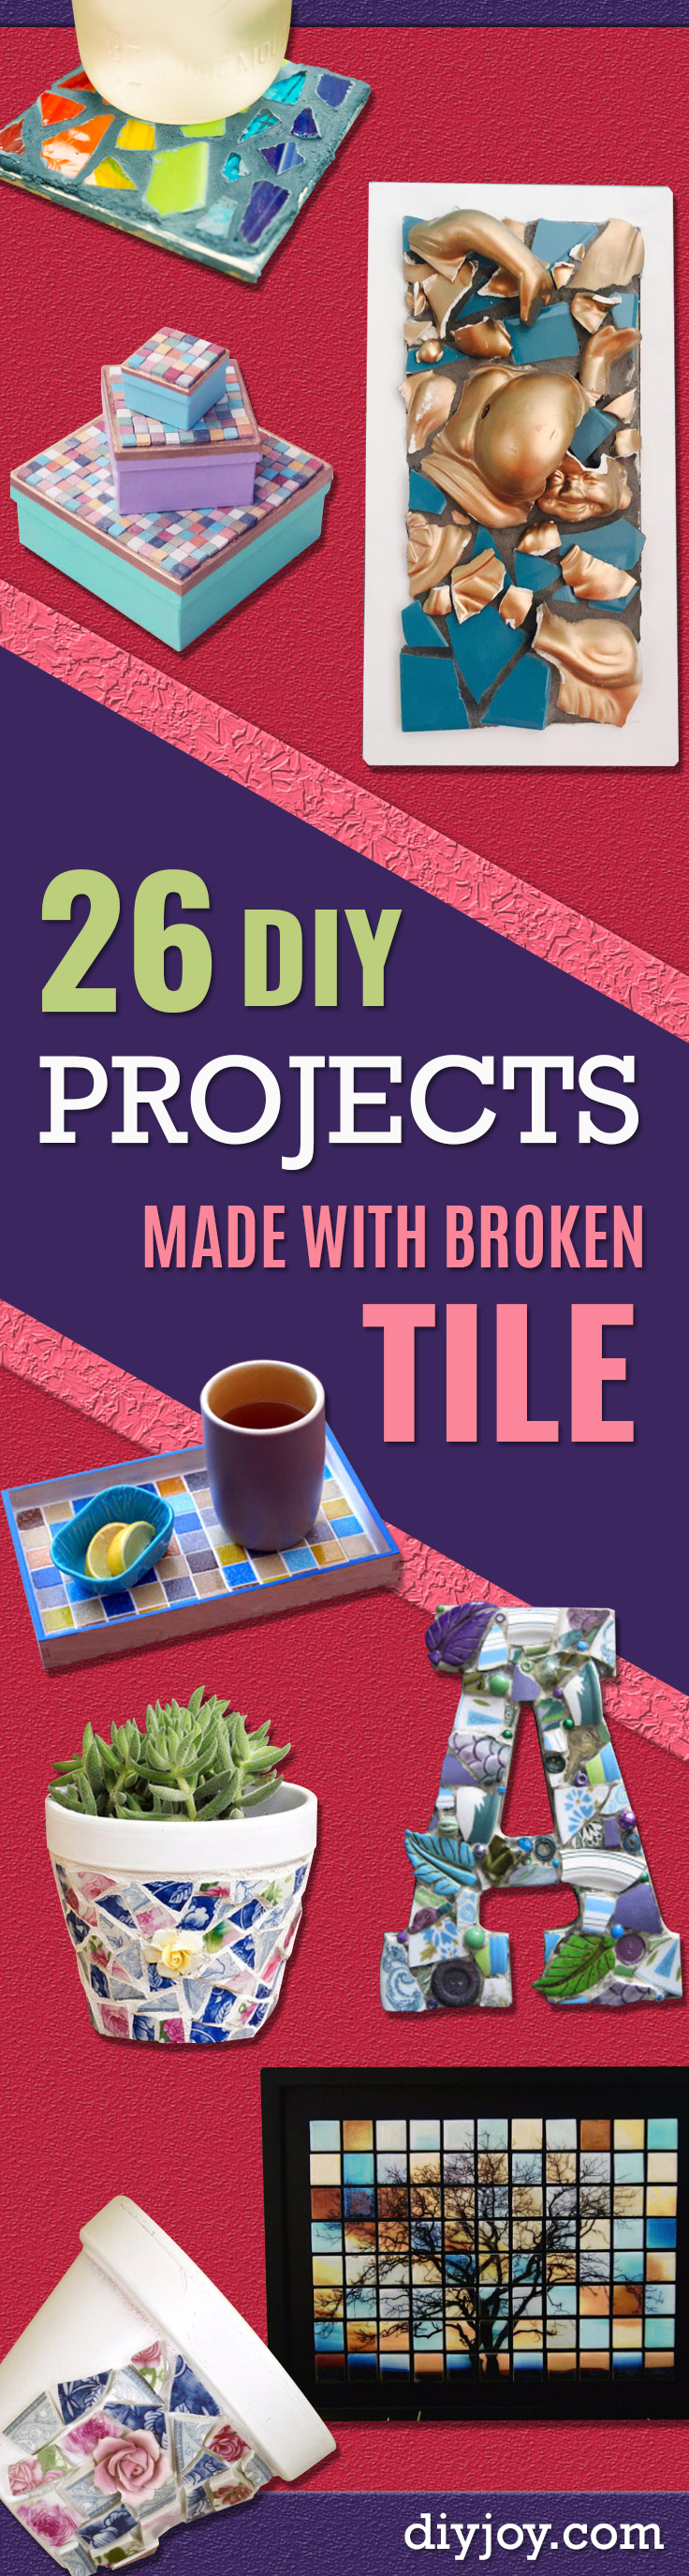 DIY Projects Made With Broken Tile - Best Creative Crafts, Easy DYI Projects You Can Make With Tiles - Mosaic Patterns and Crafty DIY Home Decor Ideas That Make Awesome DIY Gifts and Christmas Presents for Friends and Family